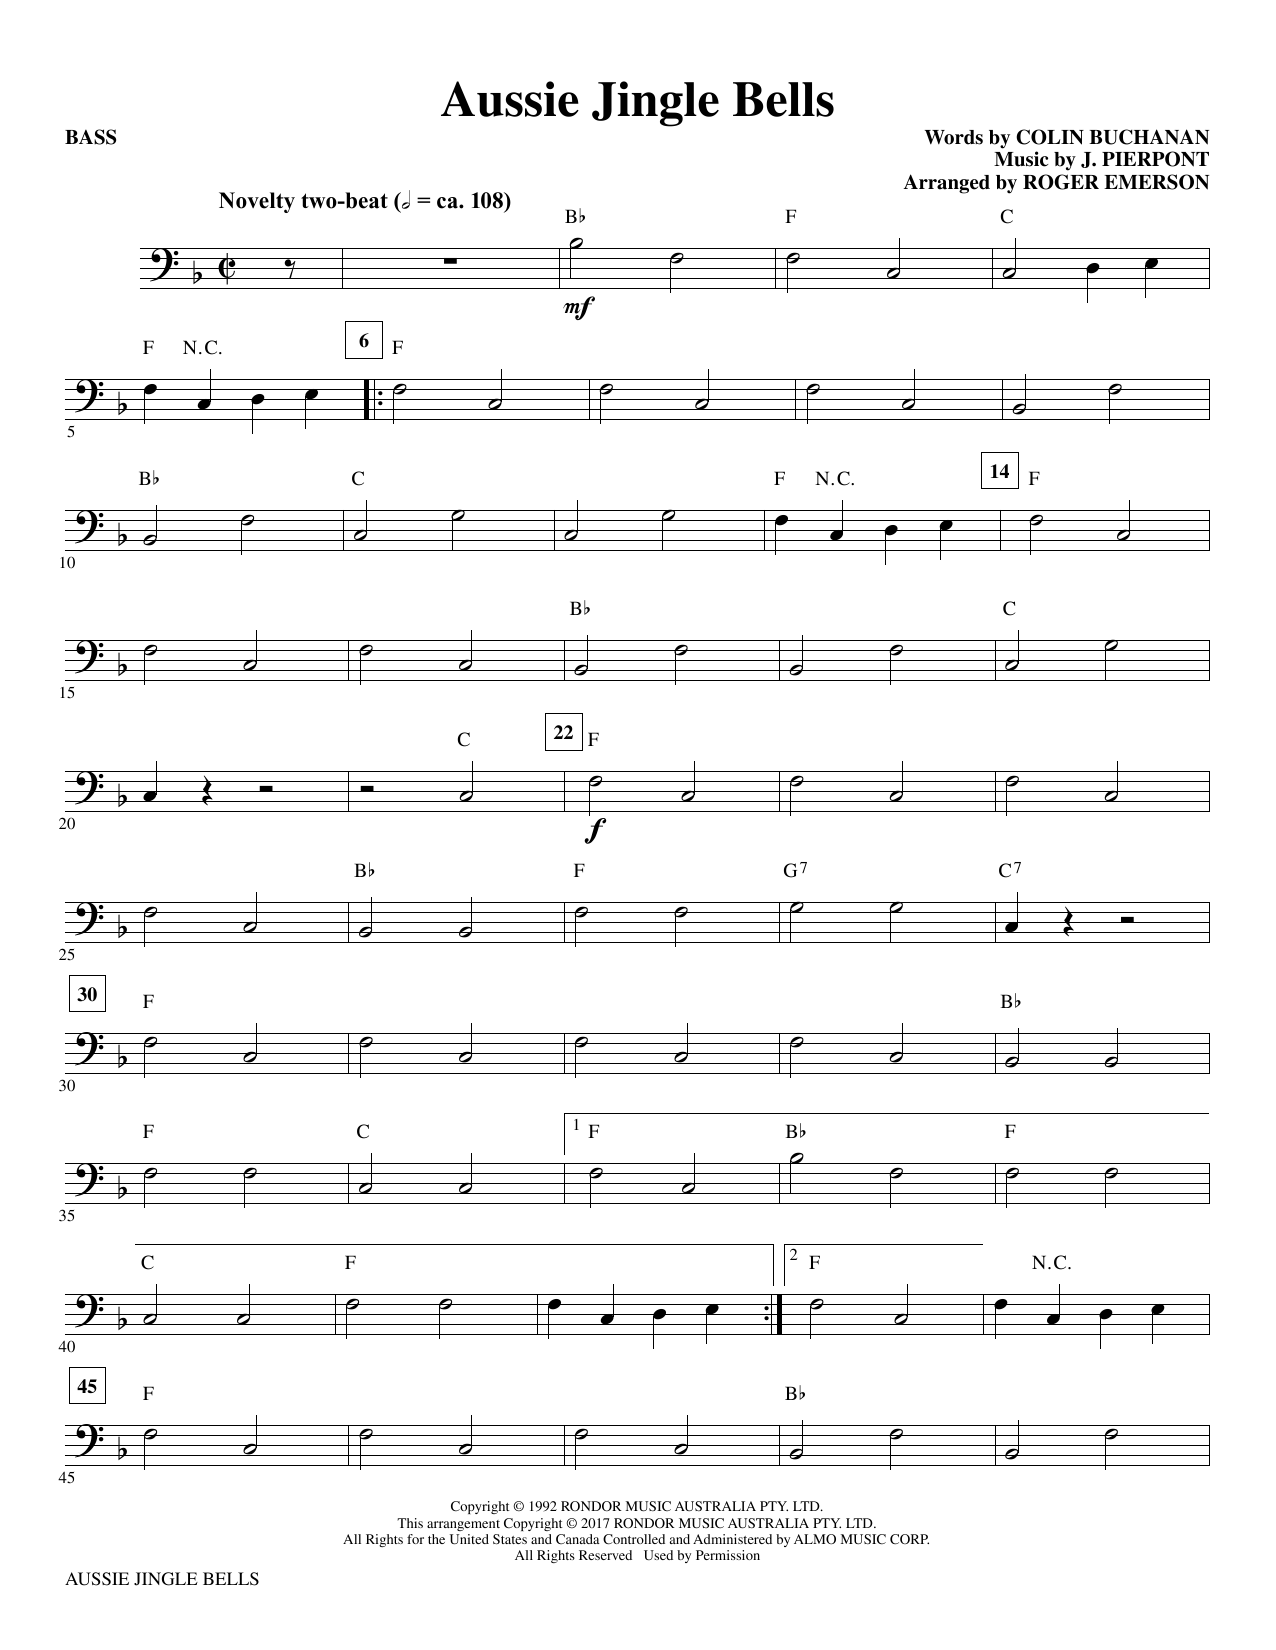 Roger Emerson Aussie Jingle Bells - Bass sheet music notes and chords. Download Printable PDF.